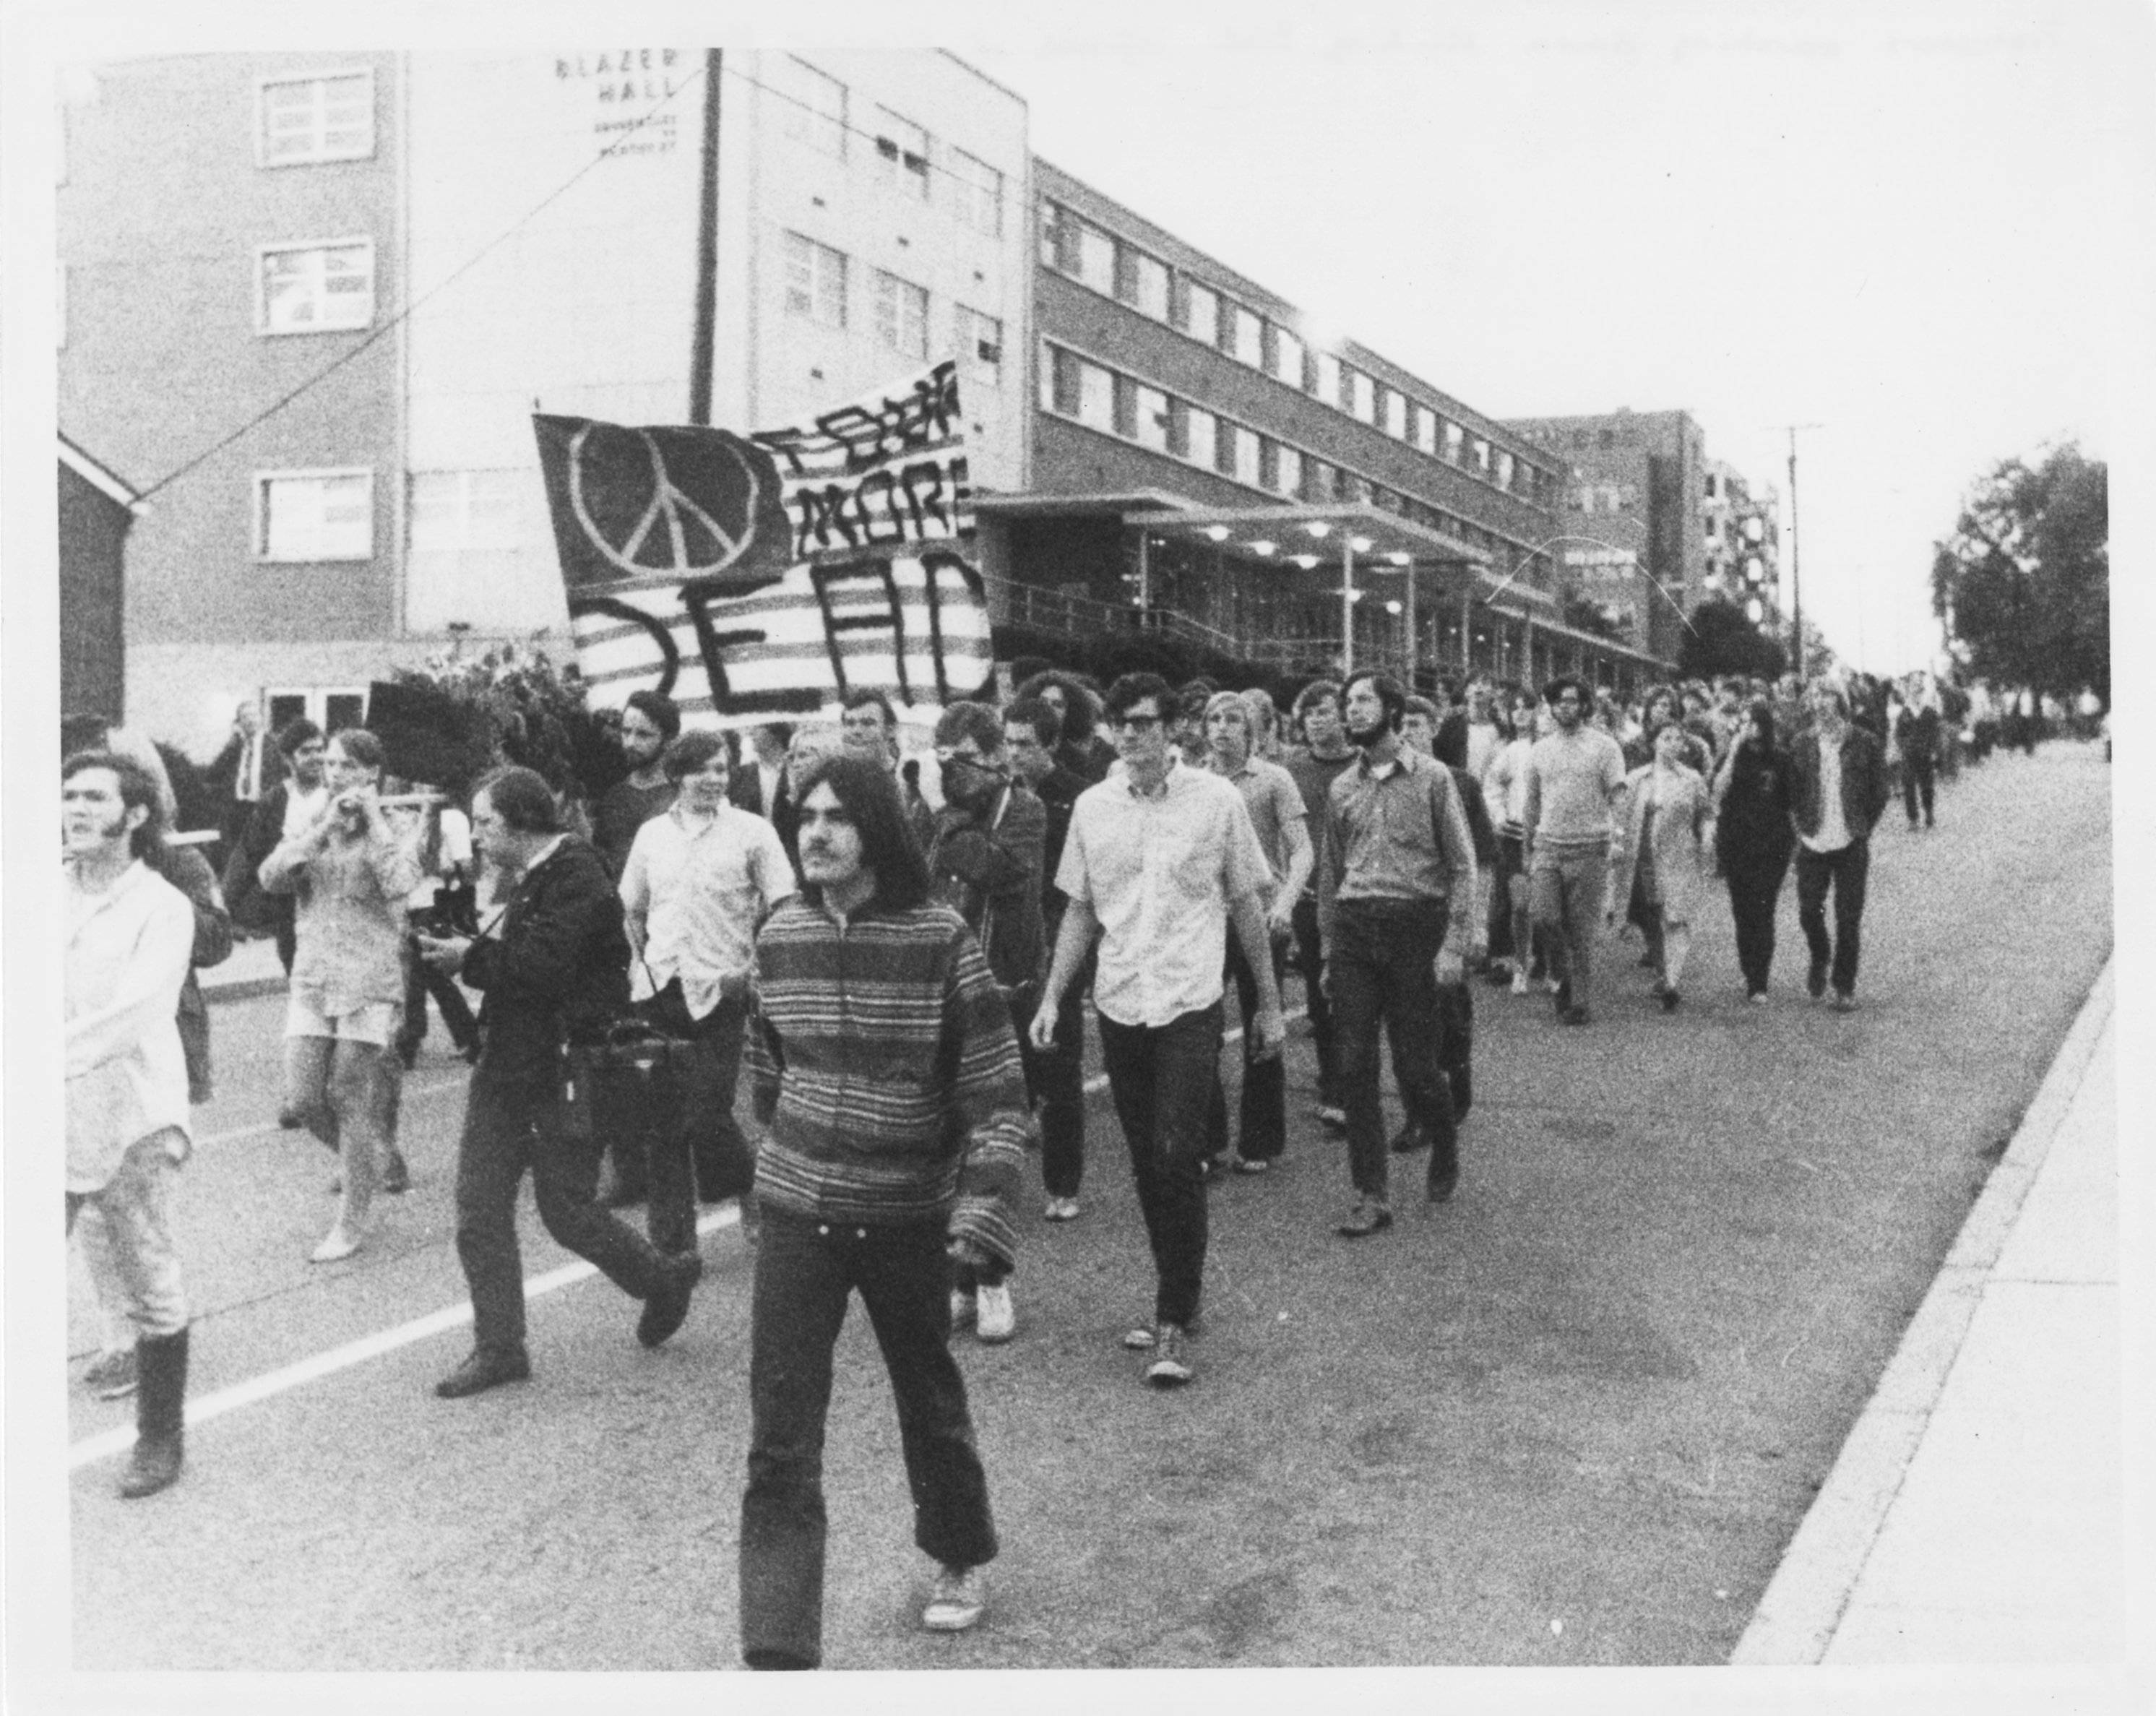 a history of kent state riot of may 1970 Free kent state papers [tags: history nixon protest kent] 1360 words riot policing at the kent state riot of may 4, 1970 - riot policing at the.